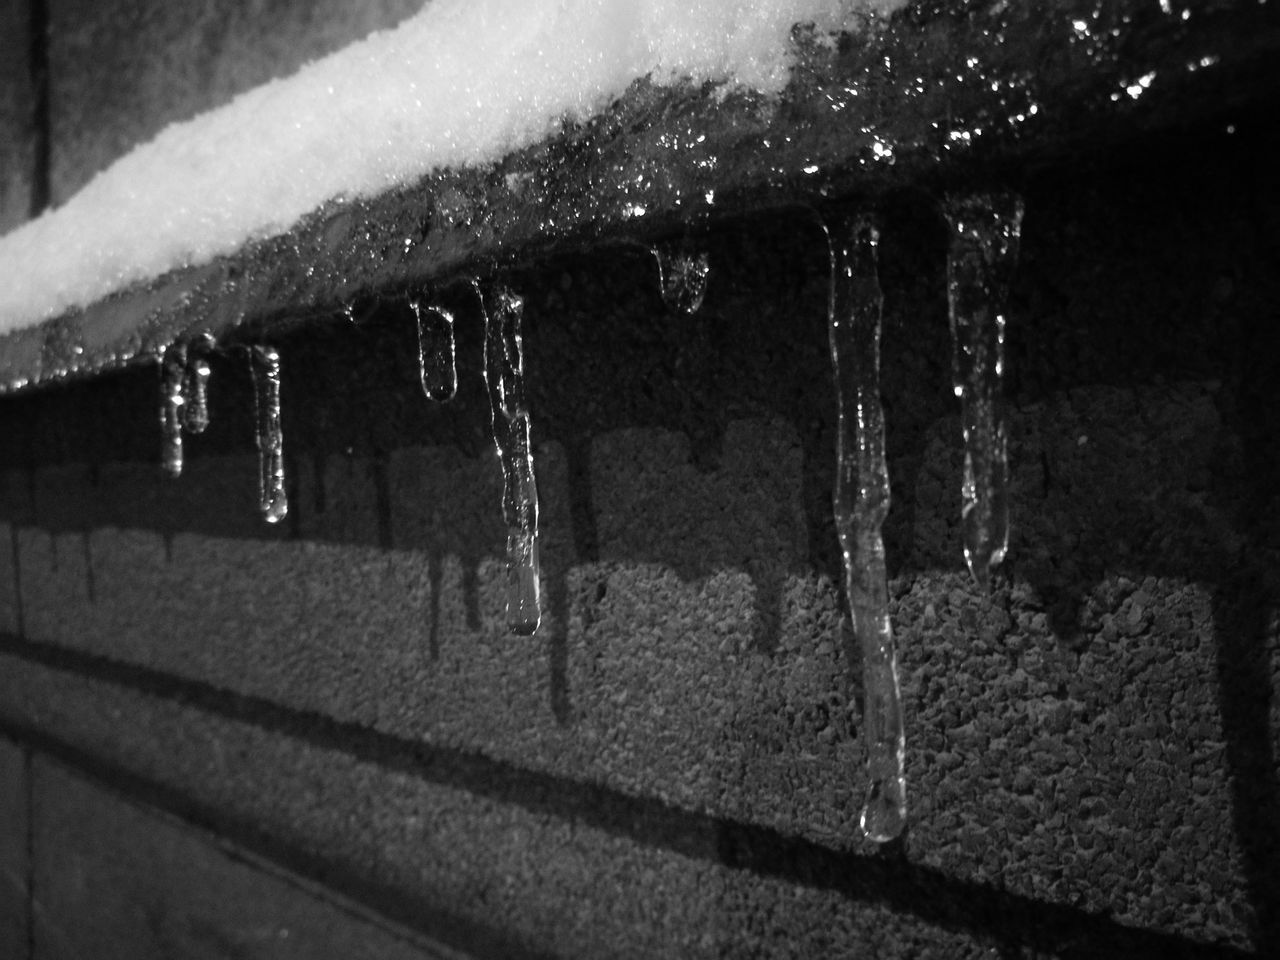 рига сосульки Icicles Monochrome Evening In The City Winter зима❄️ 2017